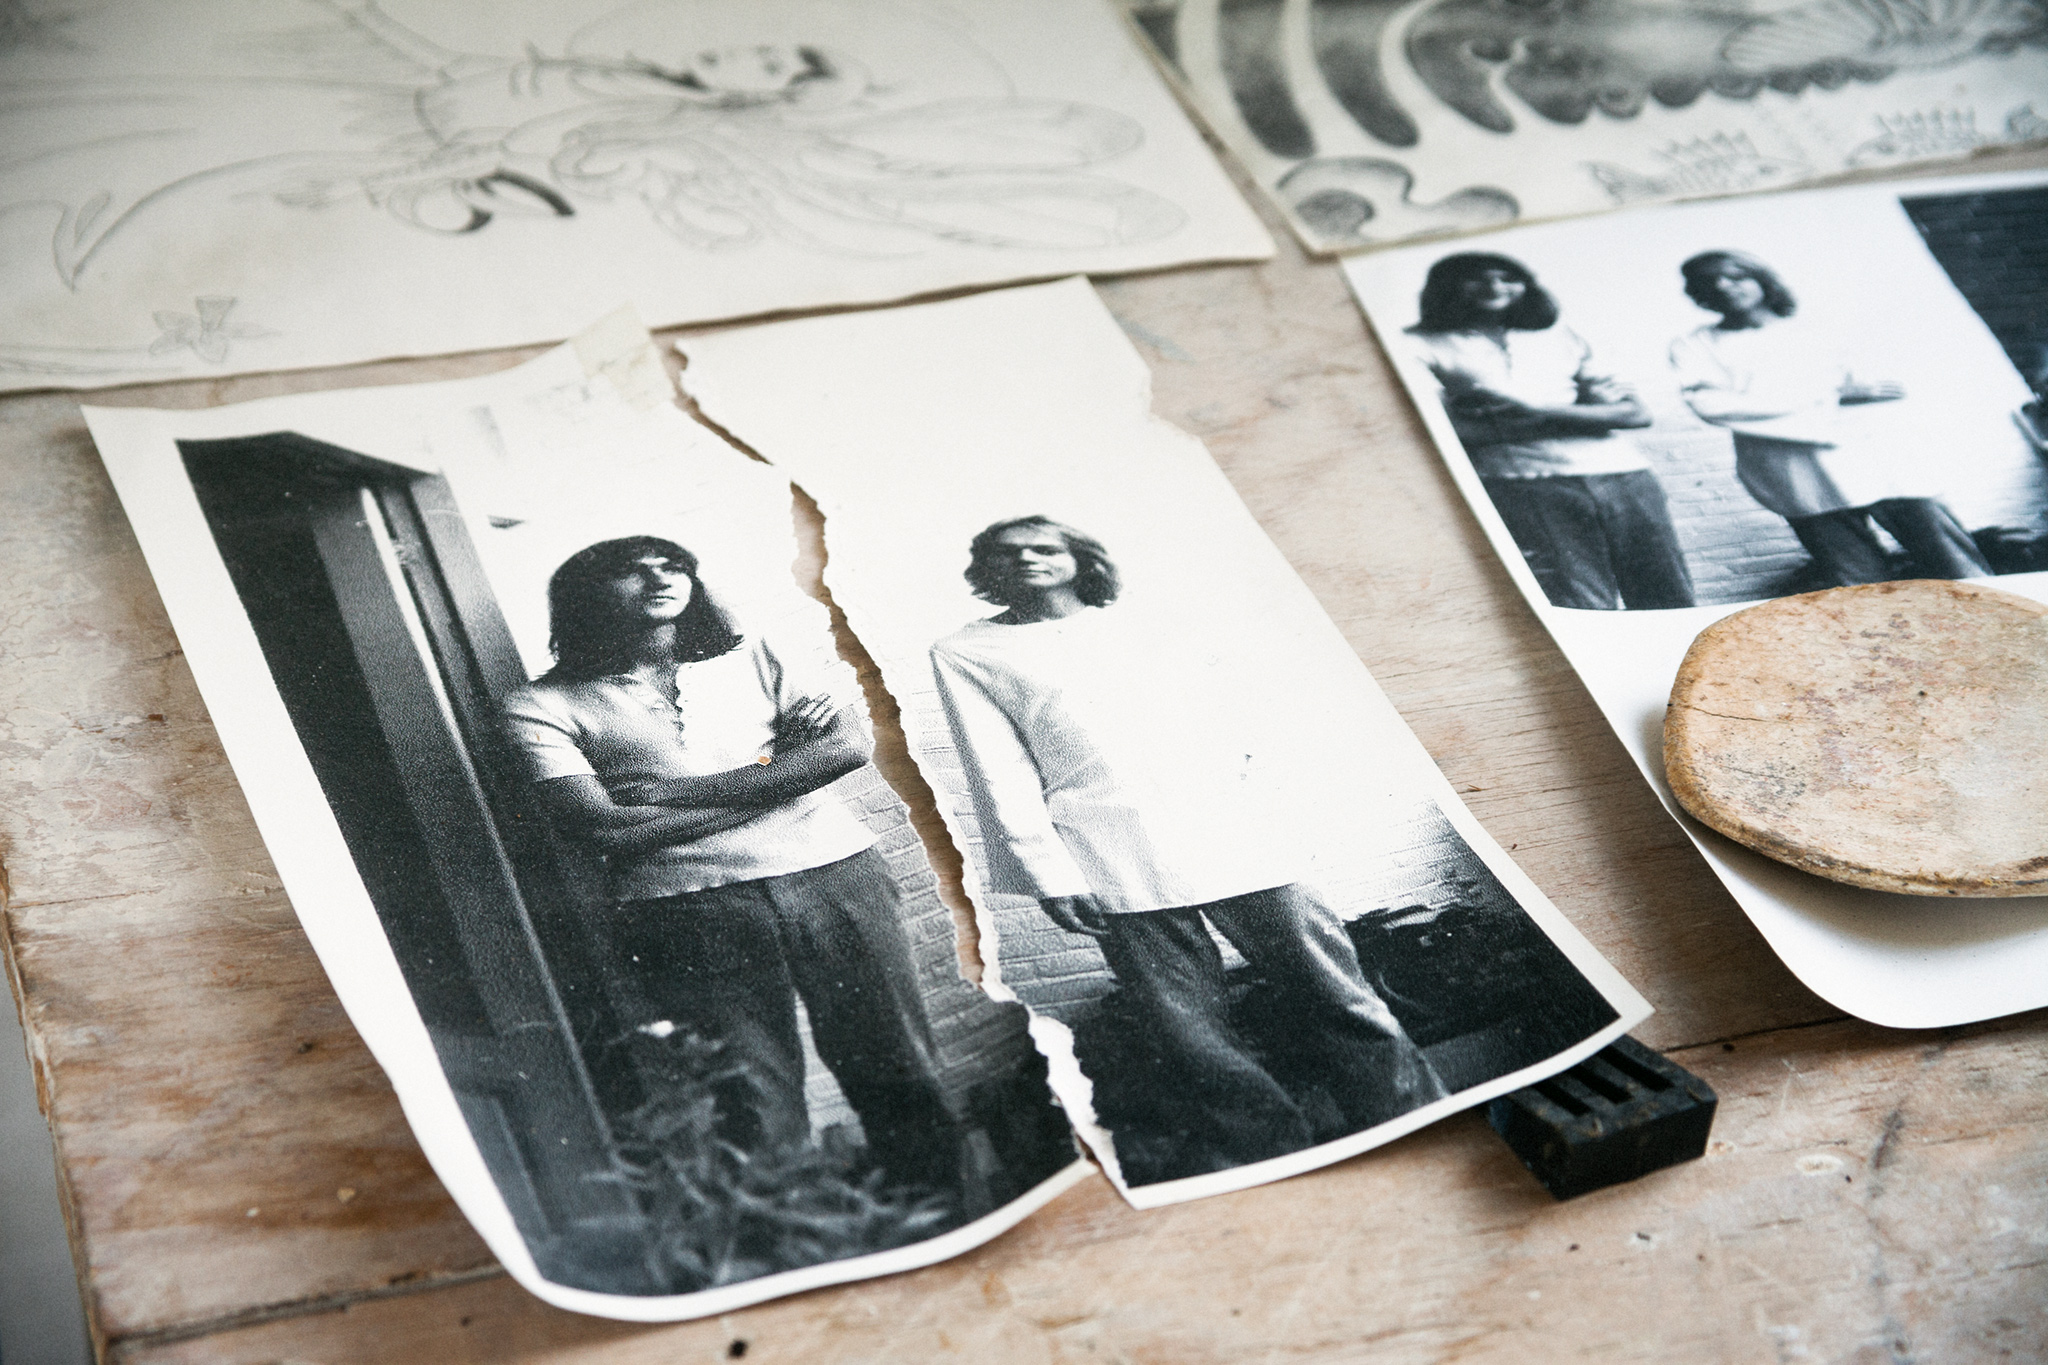 Torn apart picture of young Guido (left) and his brother.